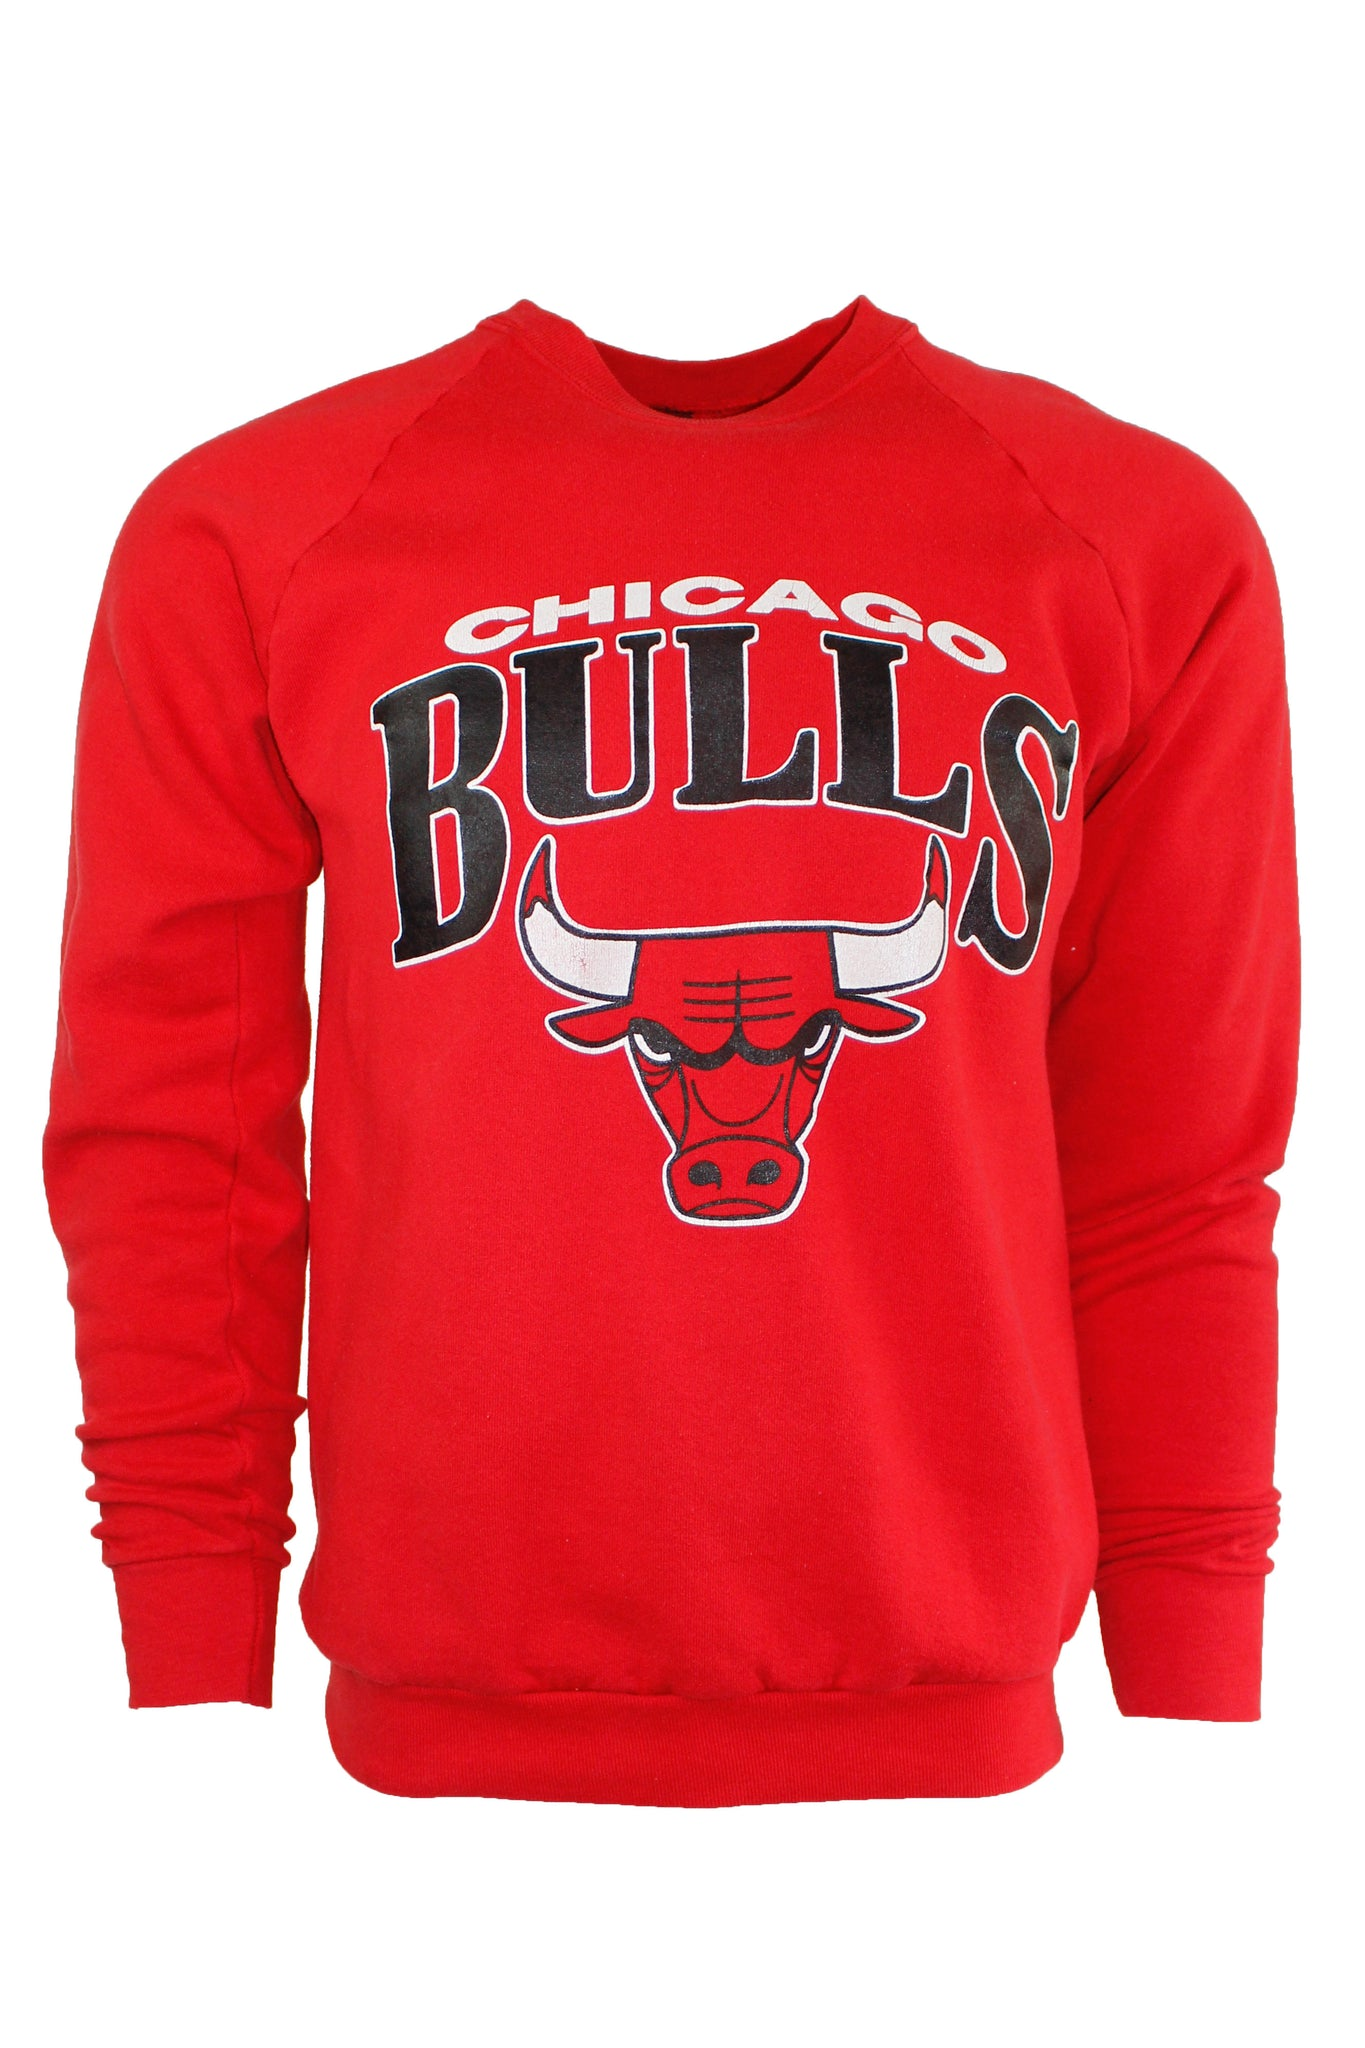 Vintage Chicago Bulls Red Crewneck